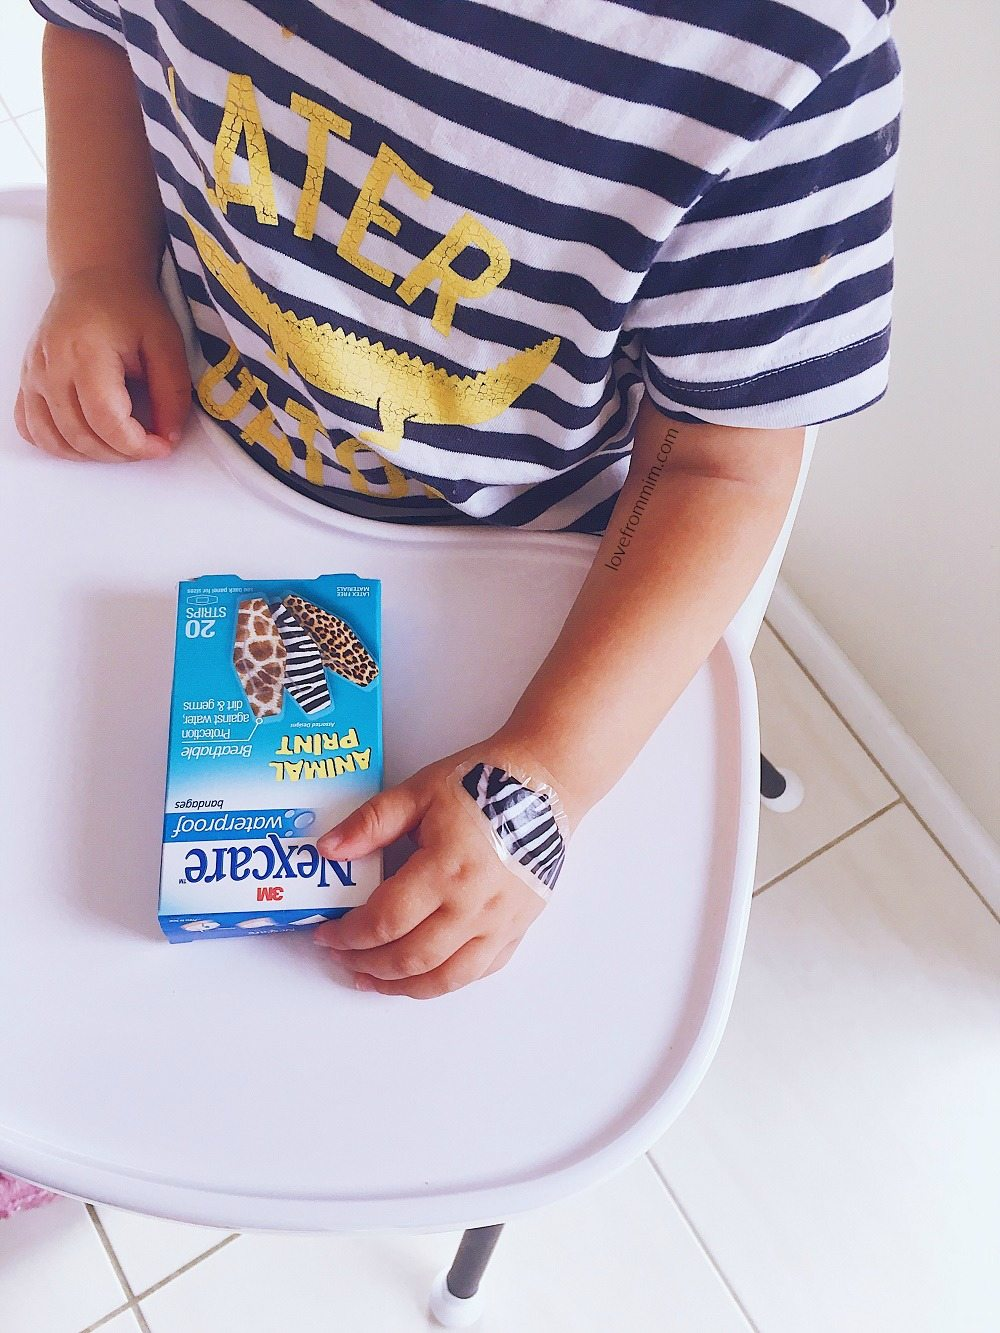 Nexcare Animal Print Waterproof Bandages - lovefrommim.com Love from Mim Kid Health and Safety, Kids, Children, Plasters, Bandaids, Bandages, Parents, Parenting,